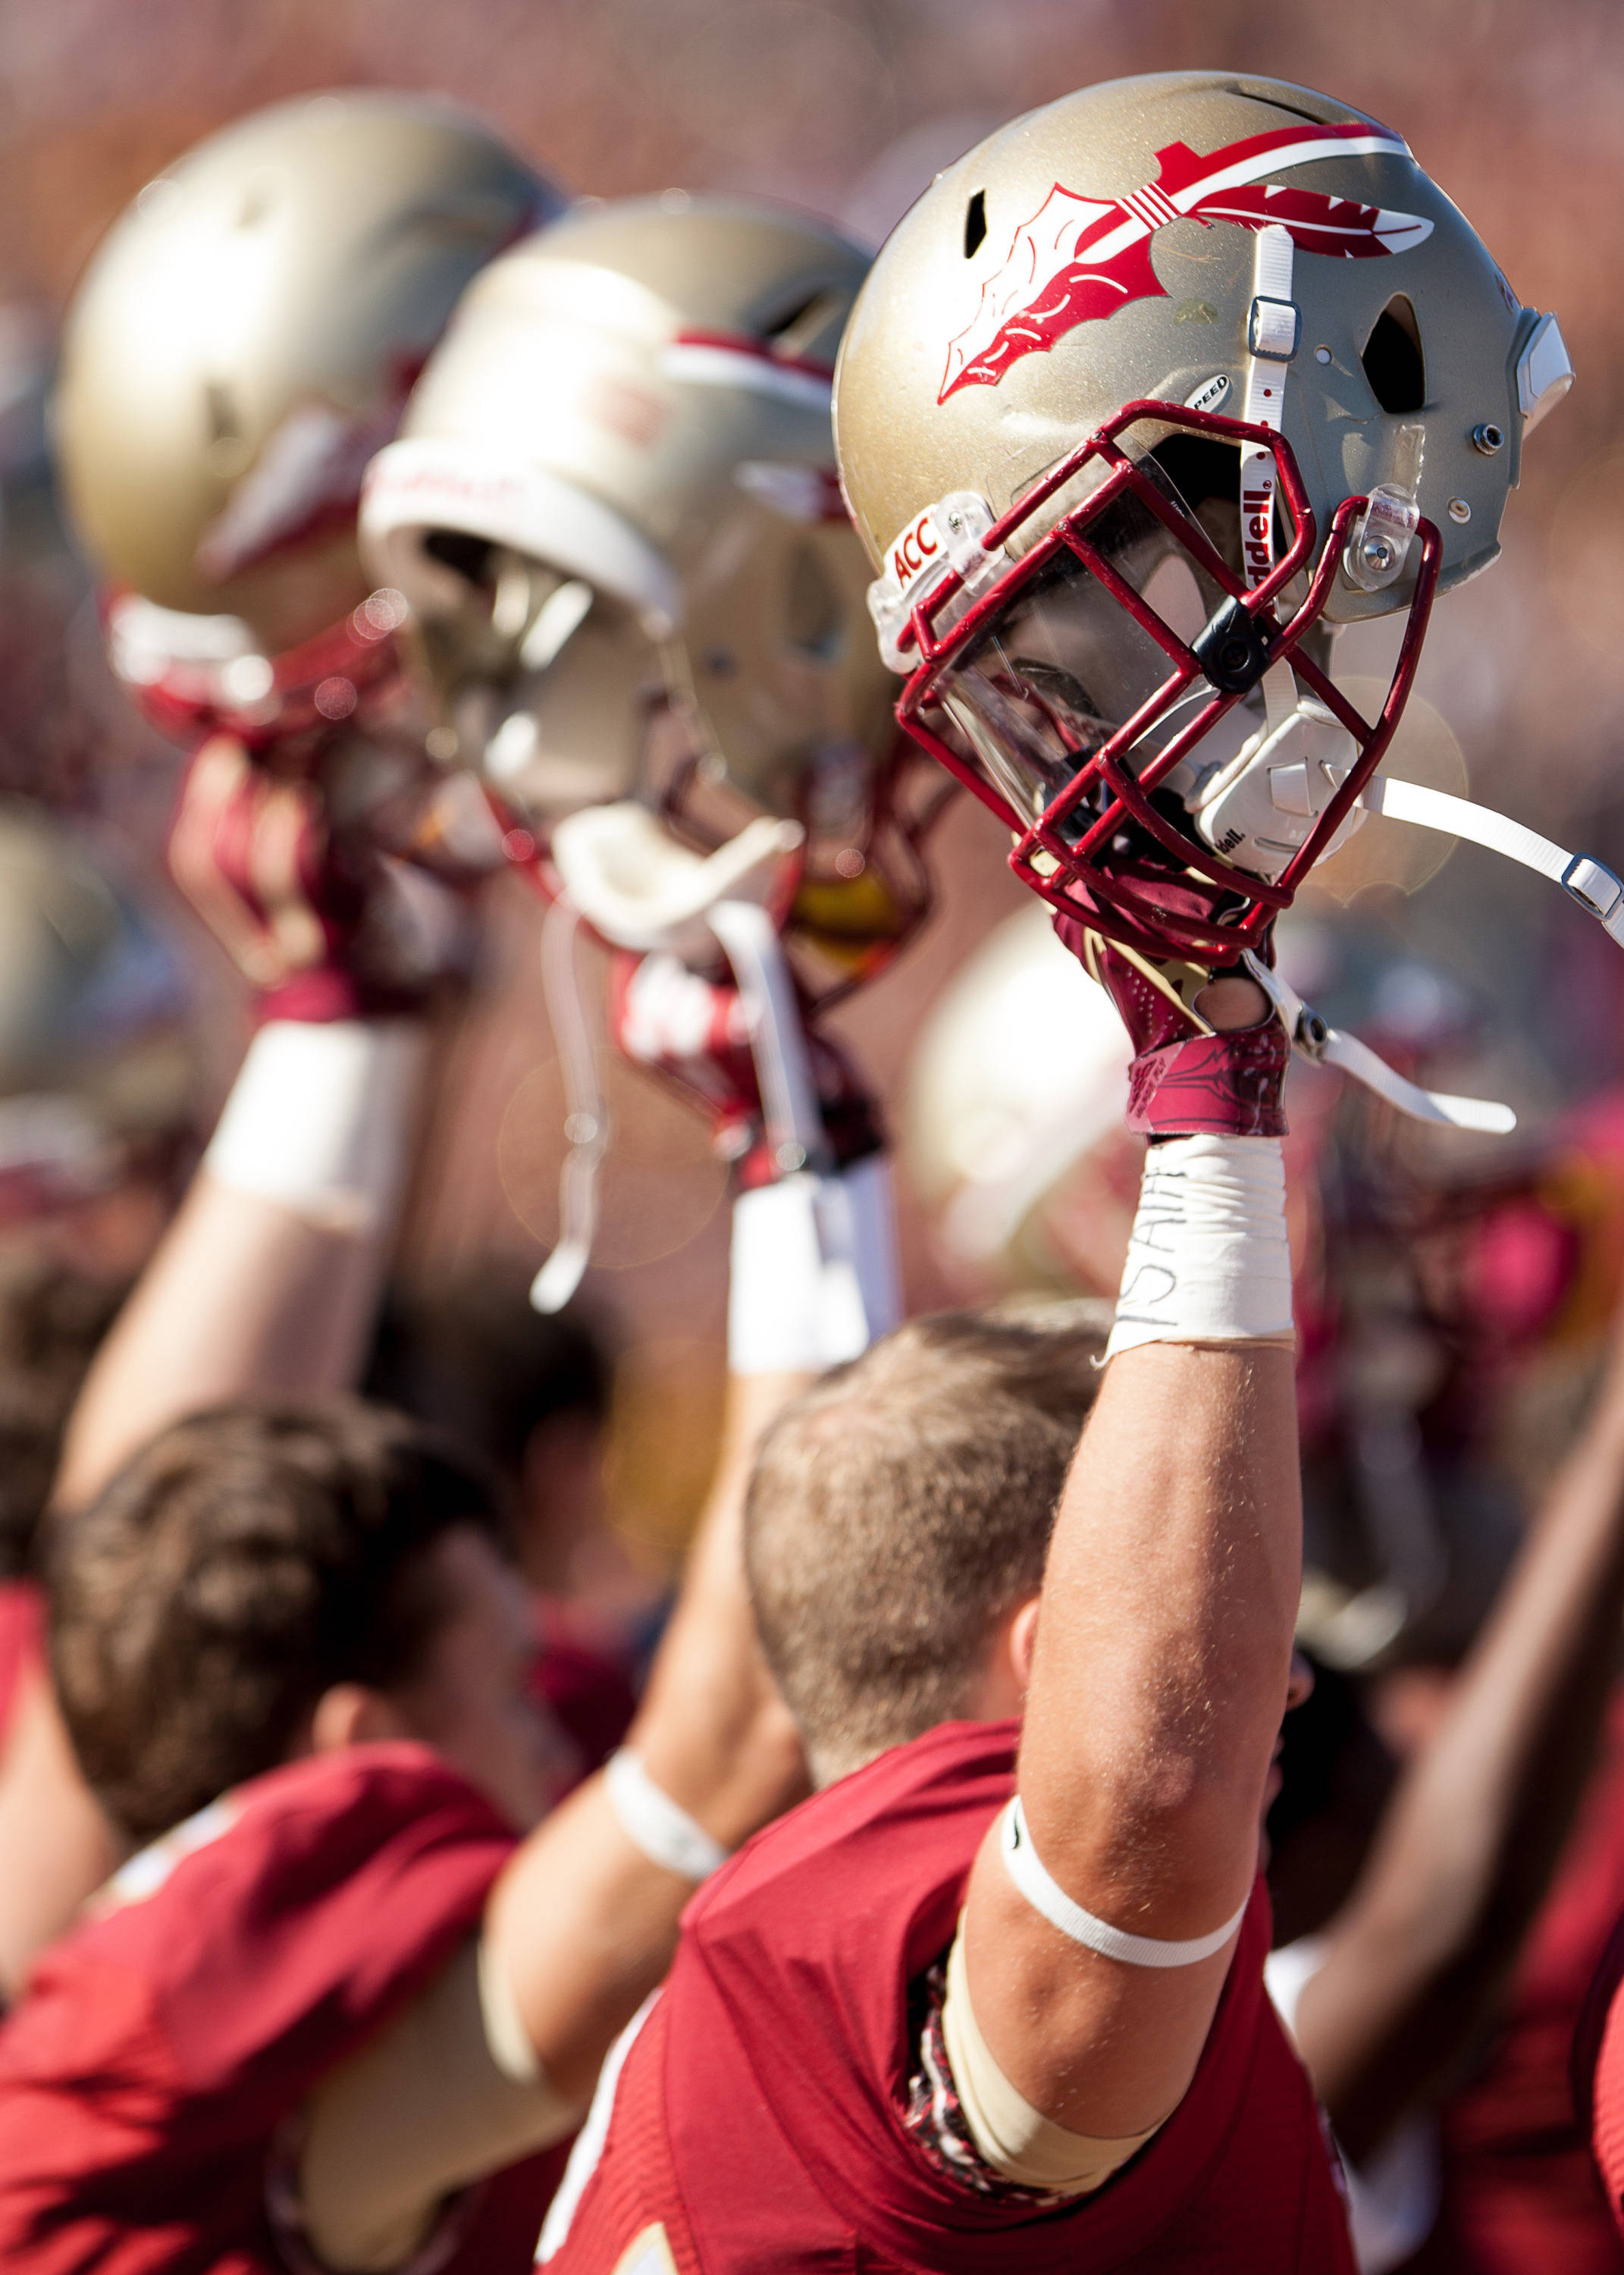 FSU players raise their helmets before FSU Football's 49-17 win over NC State on Saturday, October 26, 2013 in Tallahassee, Fla. Photo by Michael Schwarz.